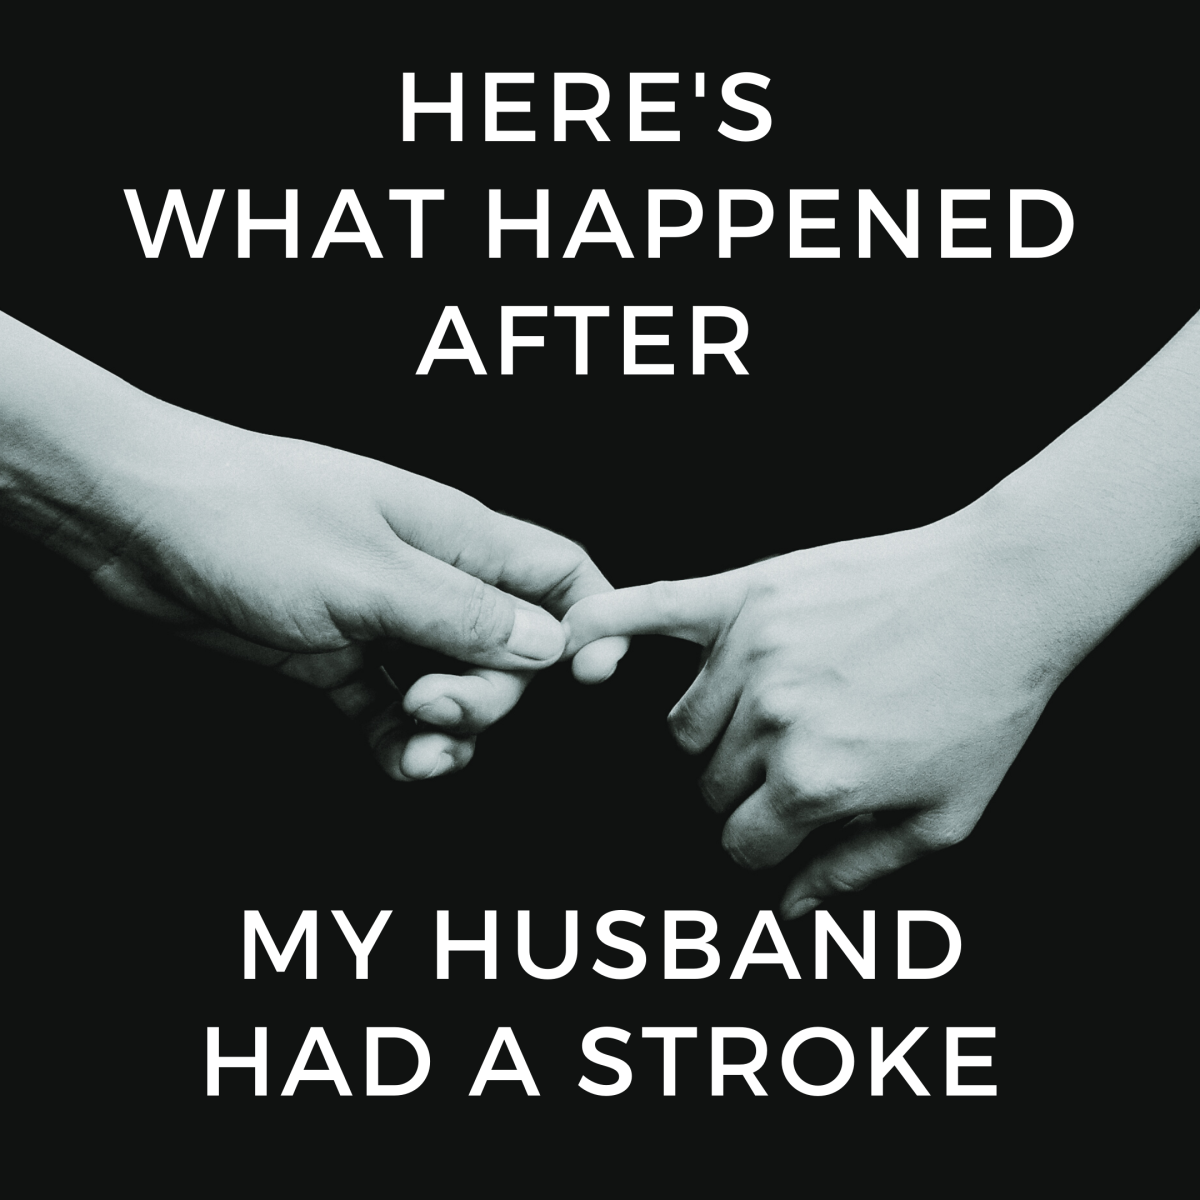 Because of possible personality changes, relationships can drastically change after someone has a stroke.